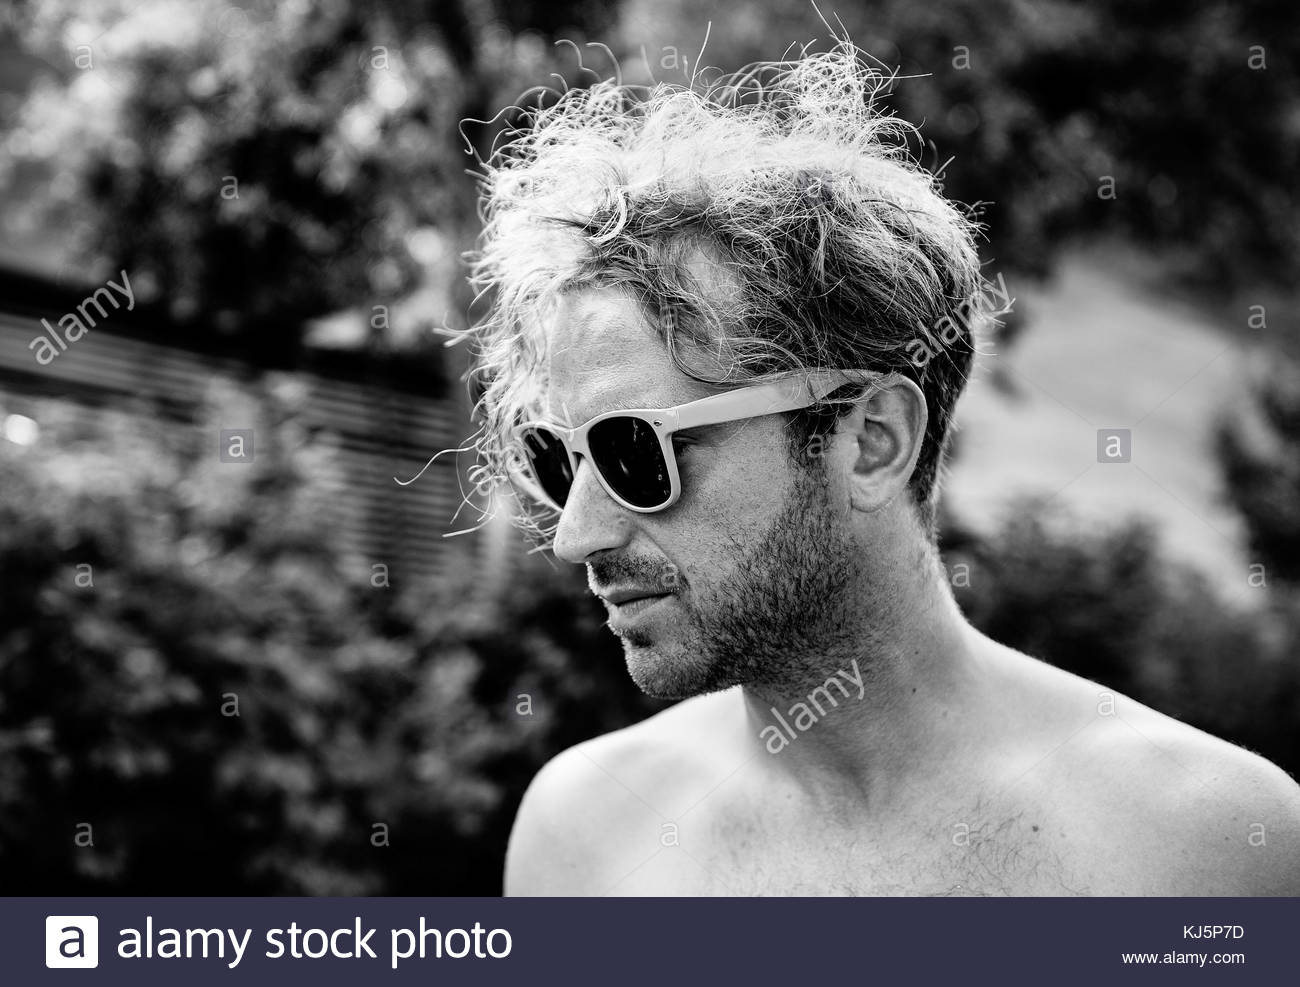 Young man with sunglasses - Stock Image